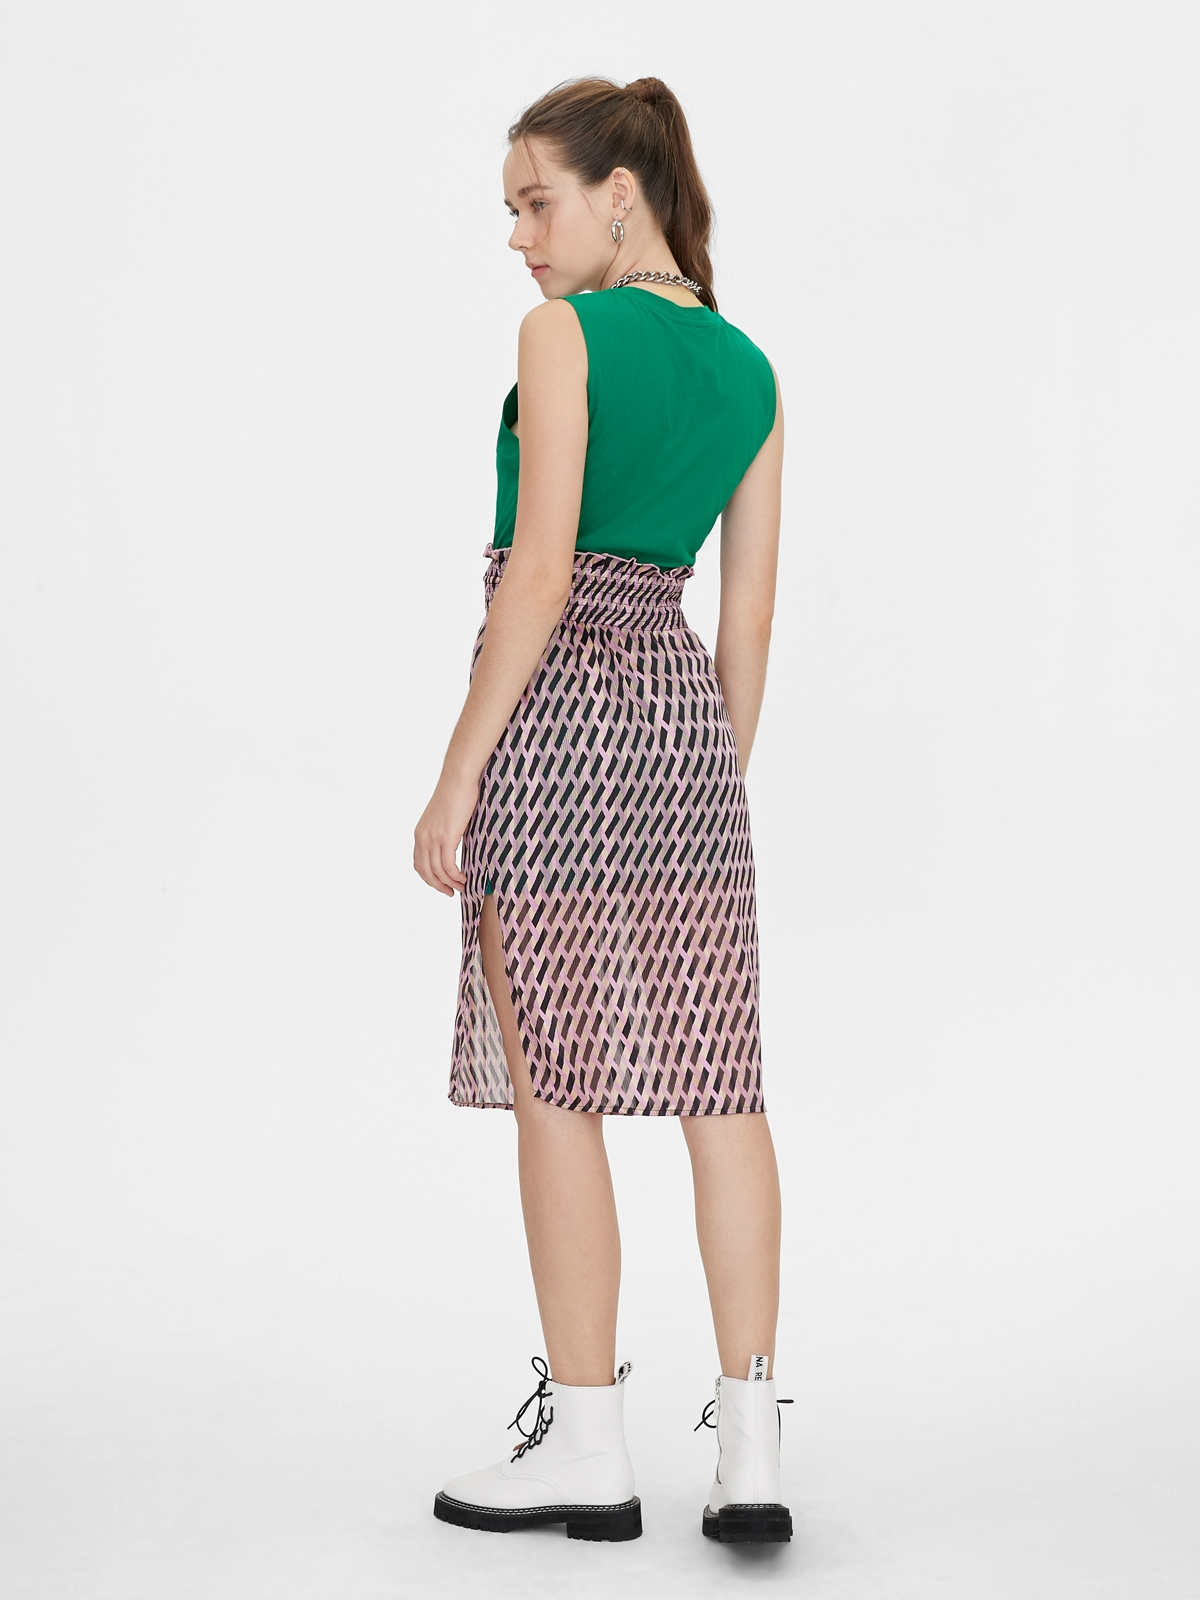 Matter Makers RECYCLE Jersey Dress Green